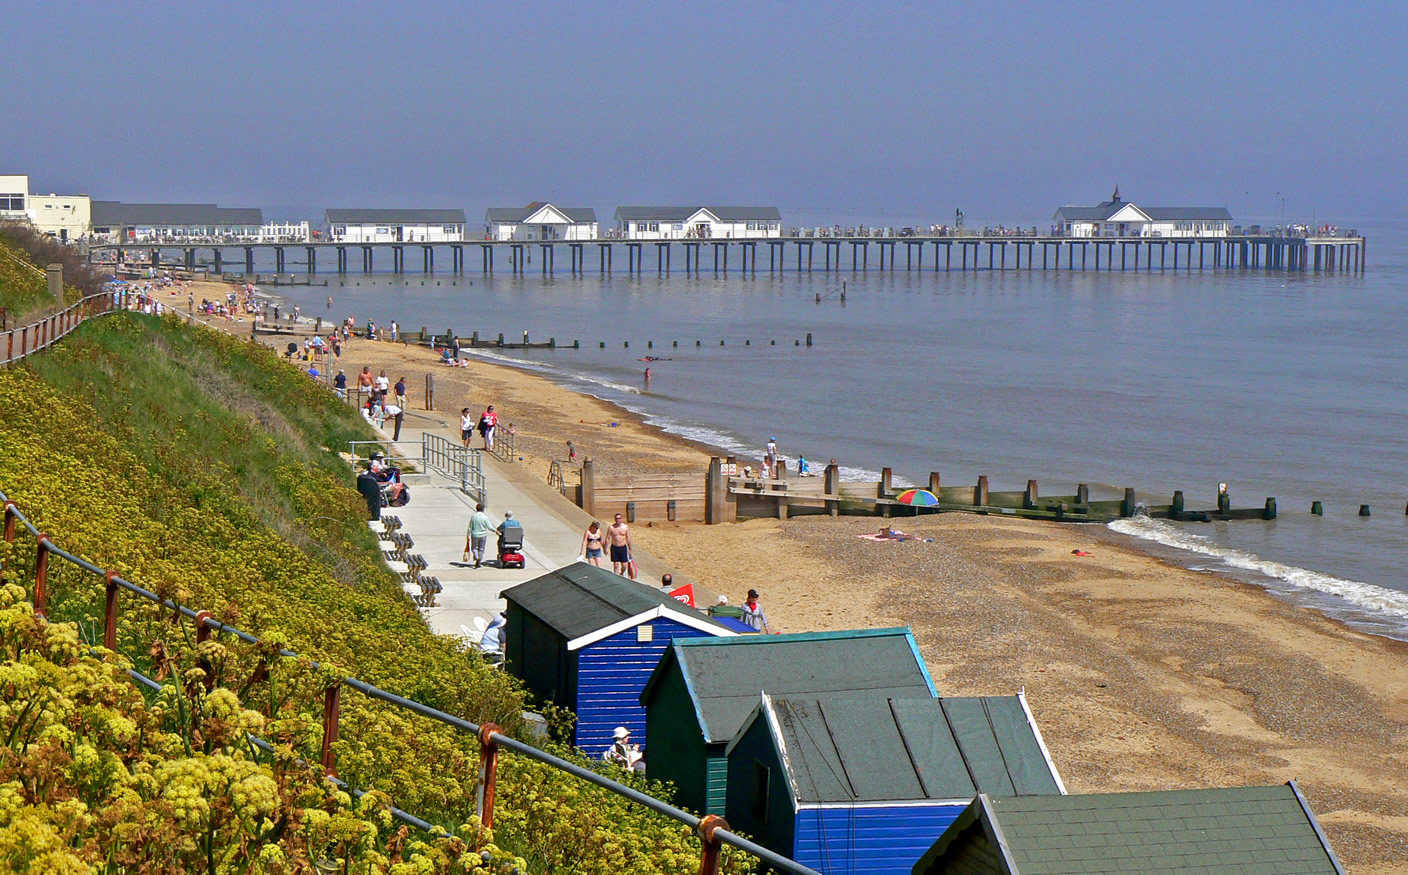 Day Trips to the Beach from Herts